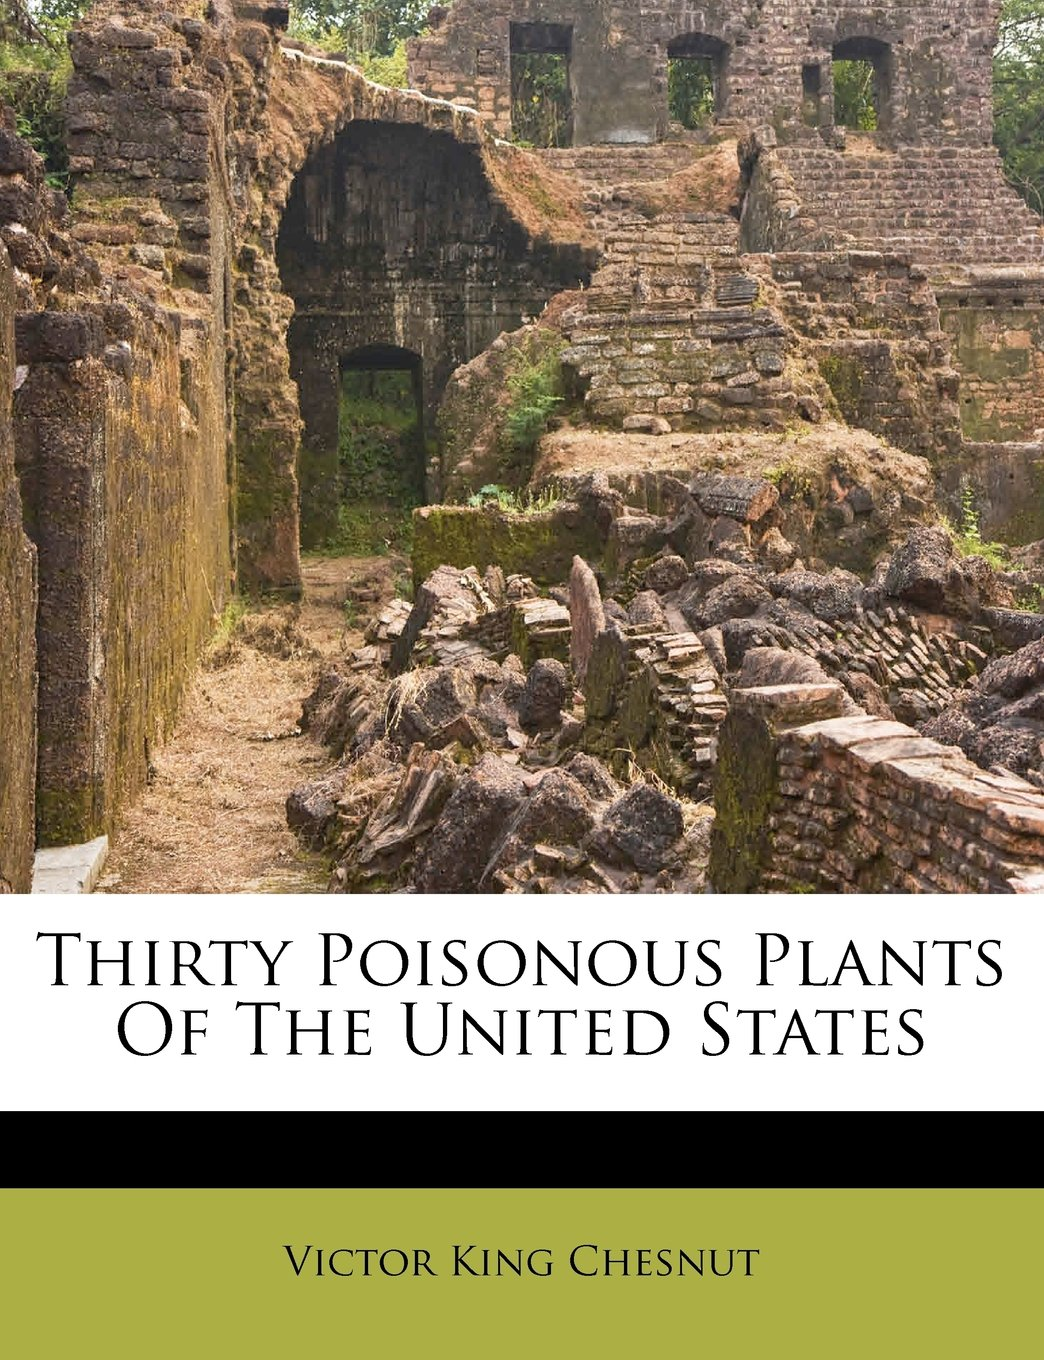 Download Thirty Poisonous Plants Of The United States ebook